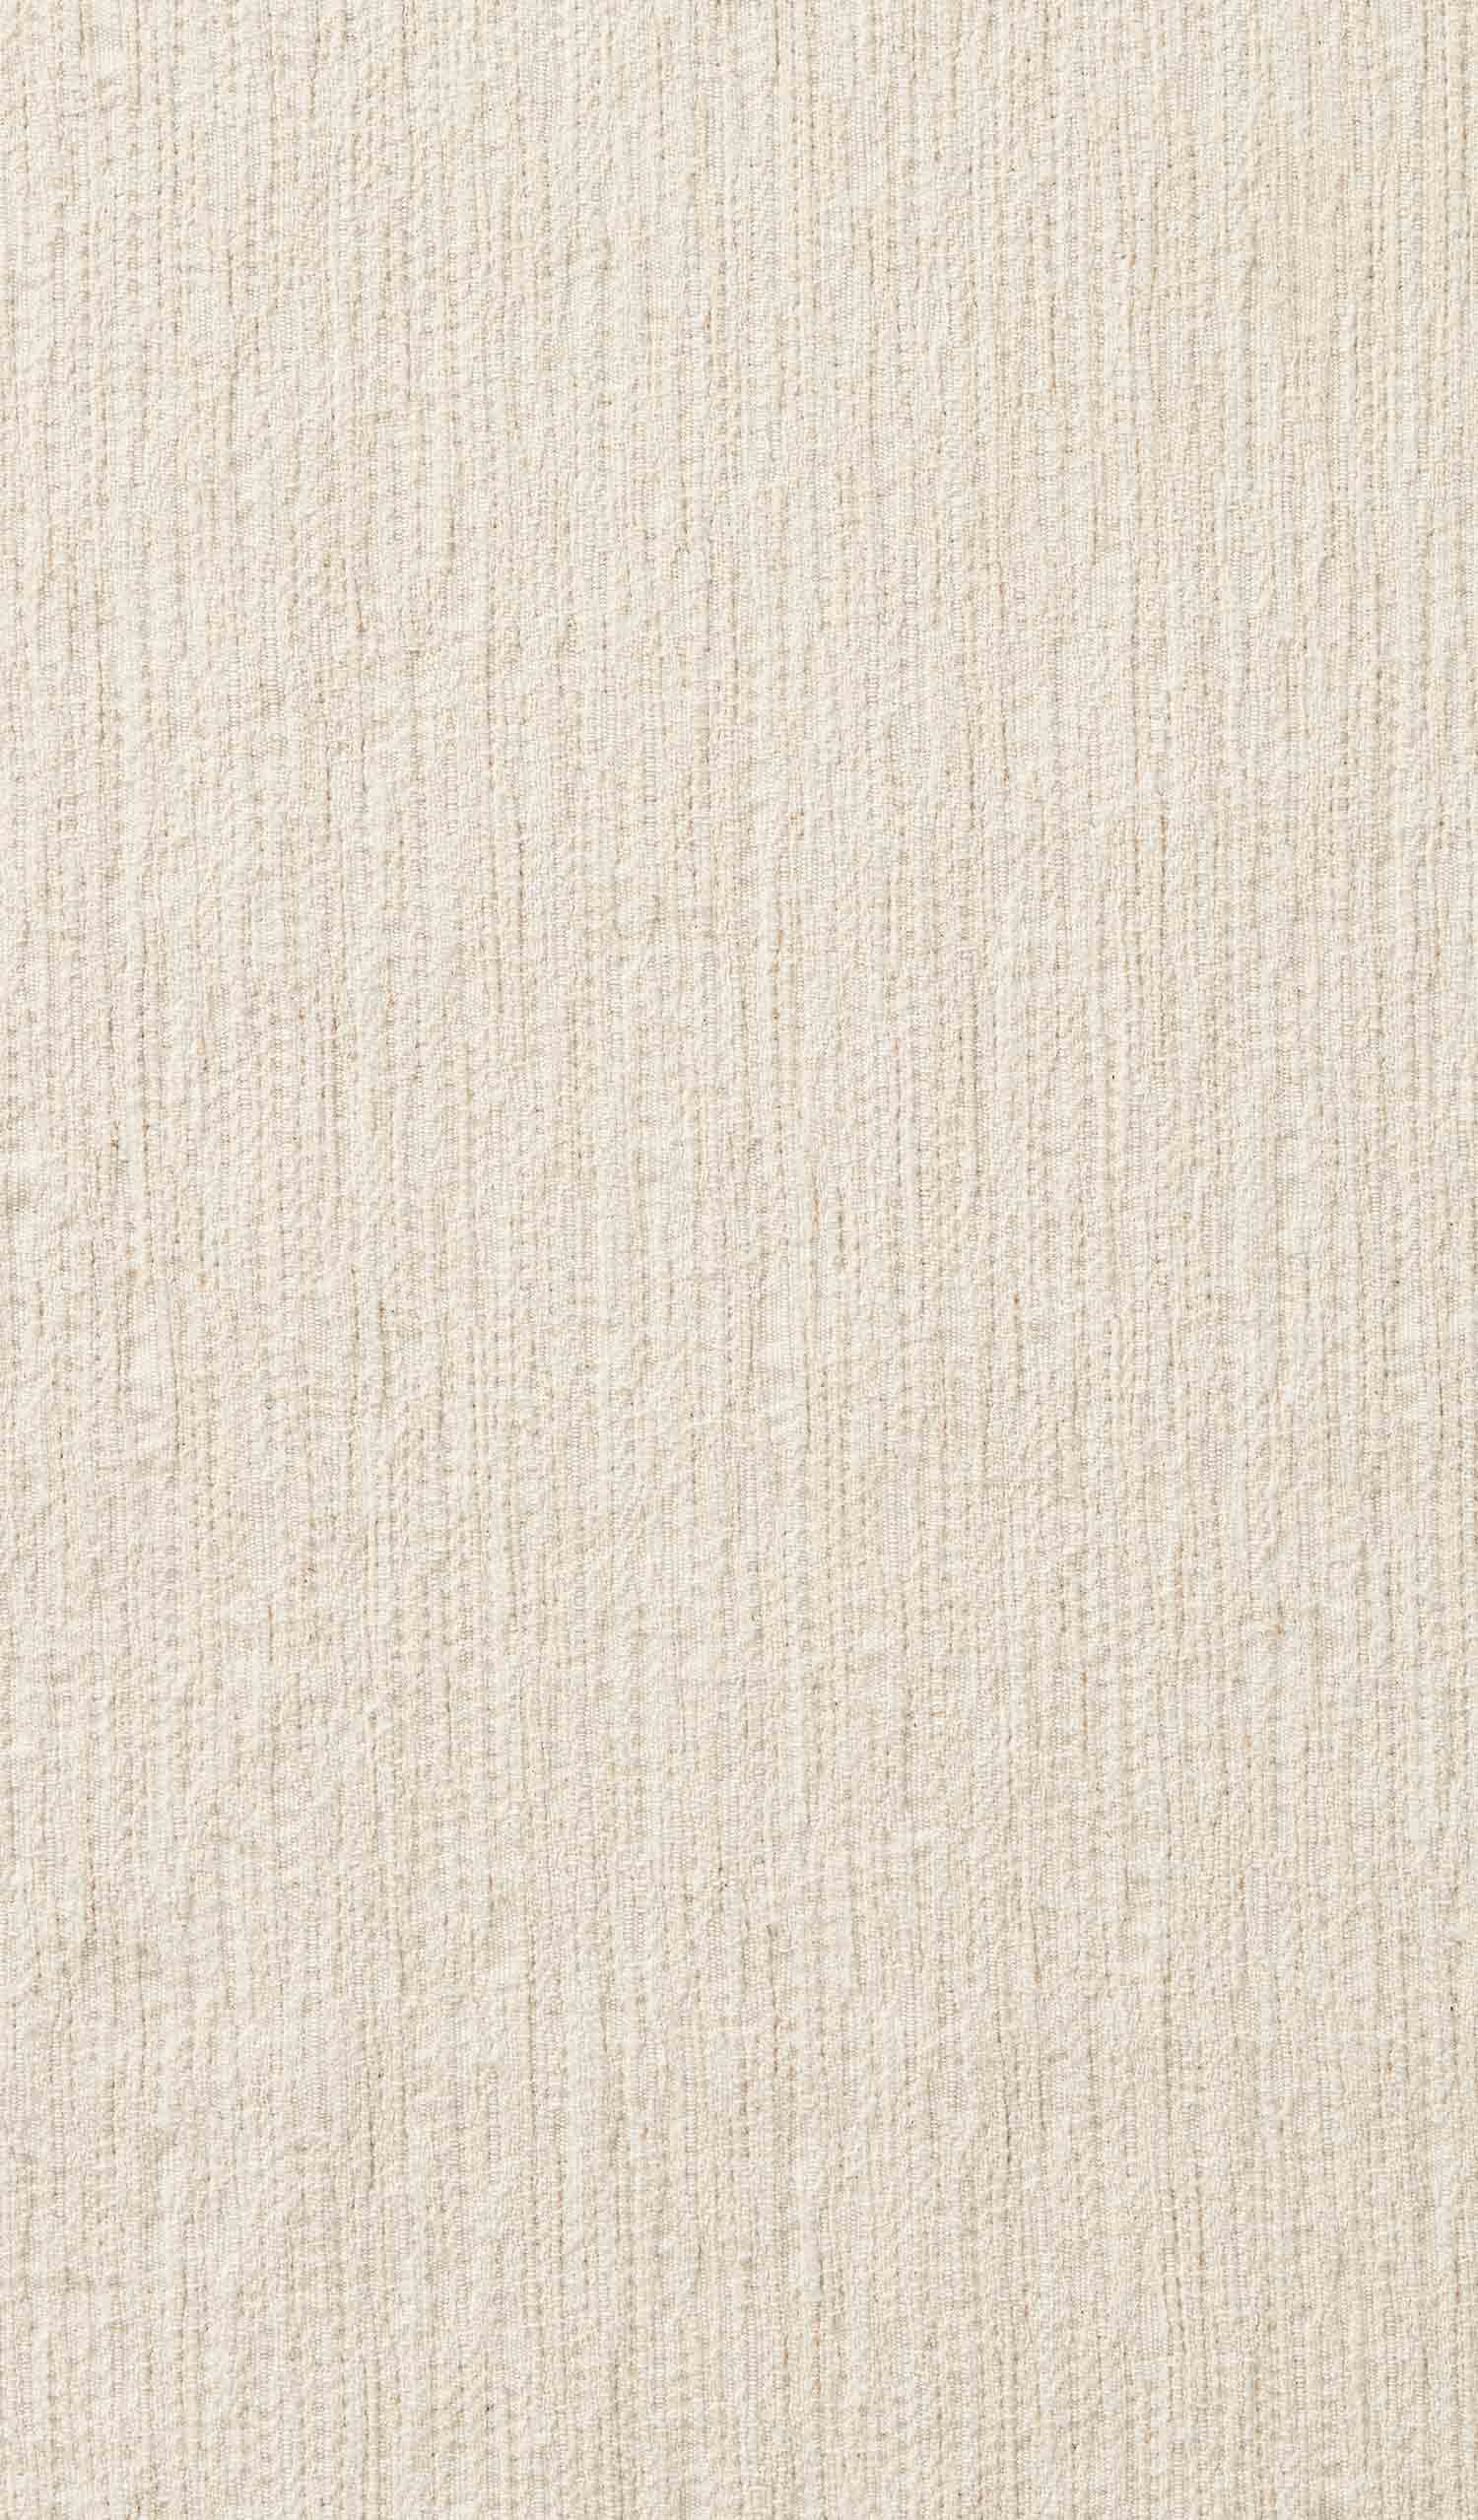 swatch of natural woven creme sw